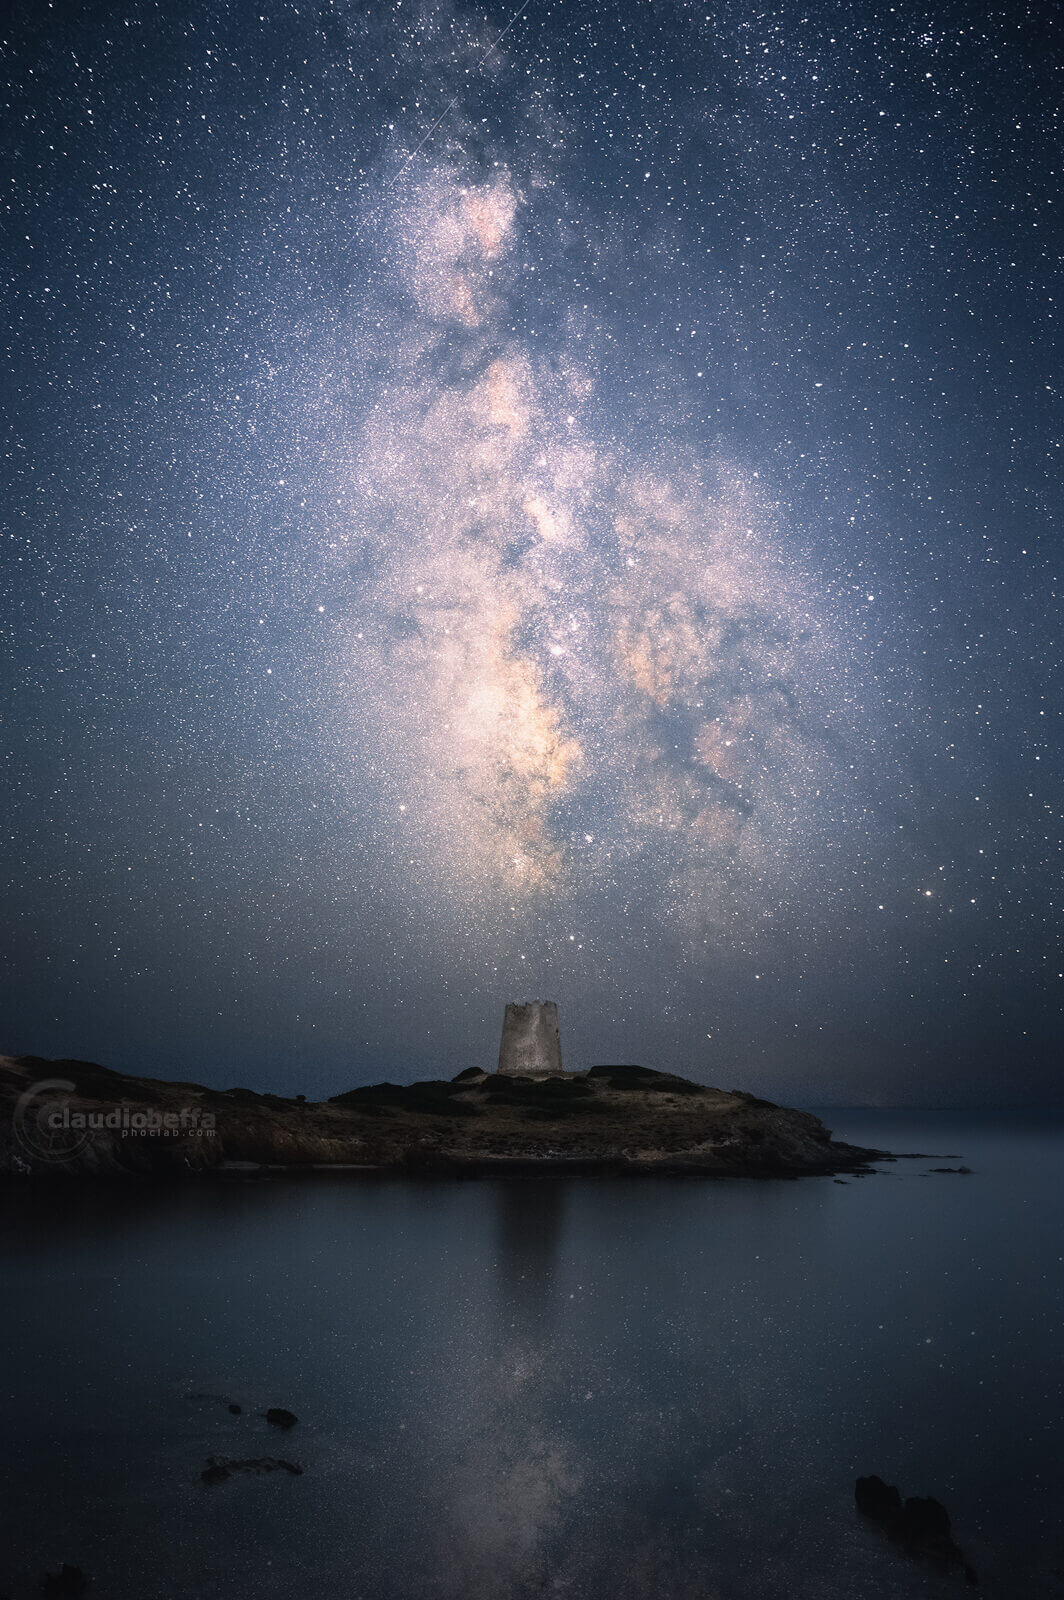 cosmos, watchtower, astrophotography, milky way, night, stars, sea, tower, sky, reflections, seascape, sardinia, italy, nature